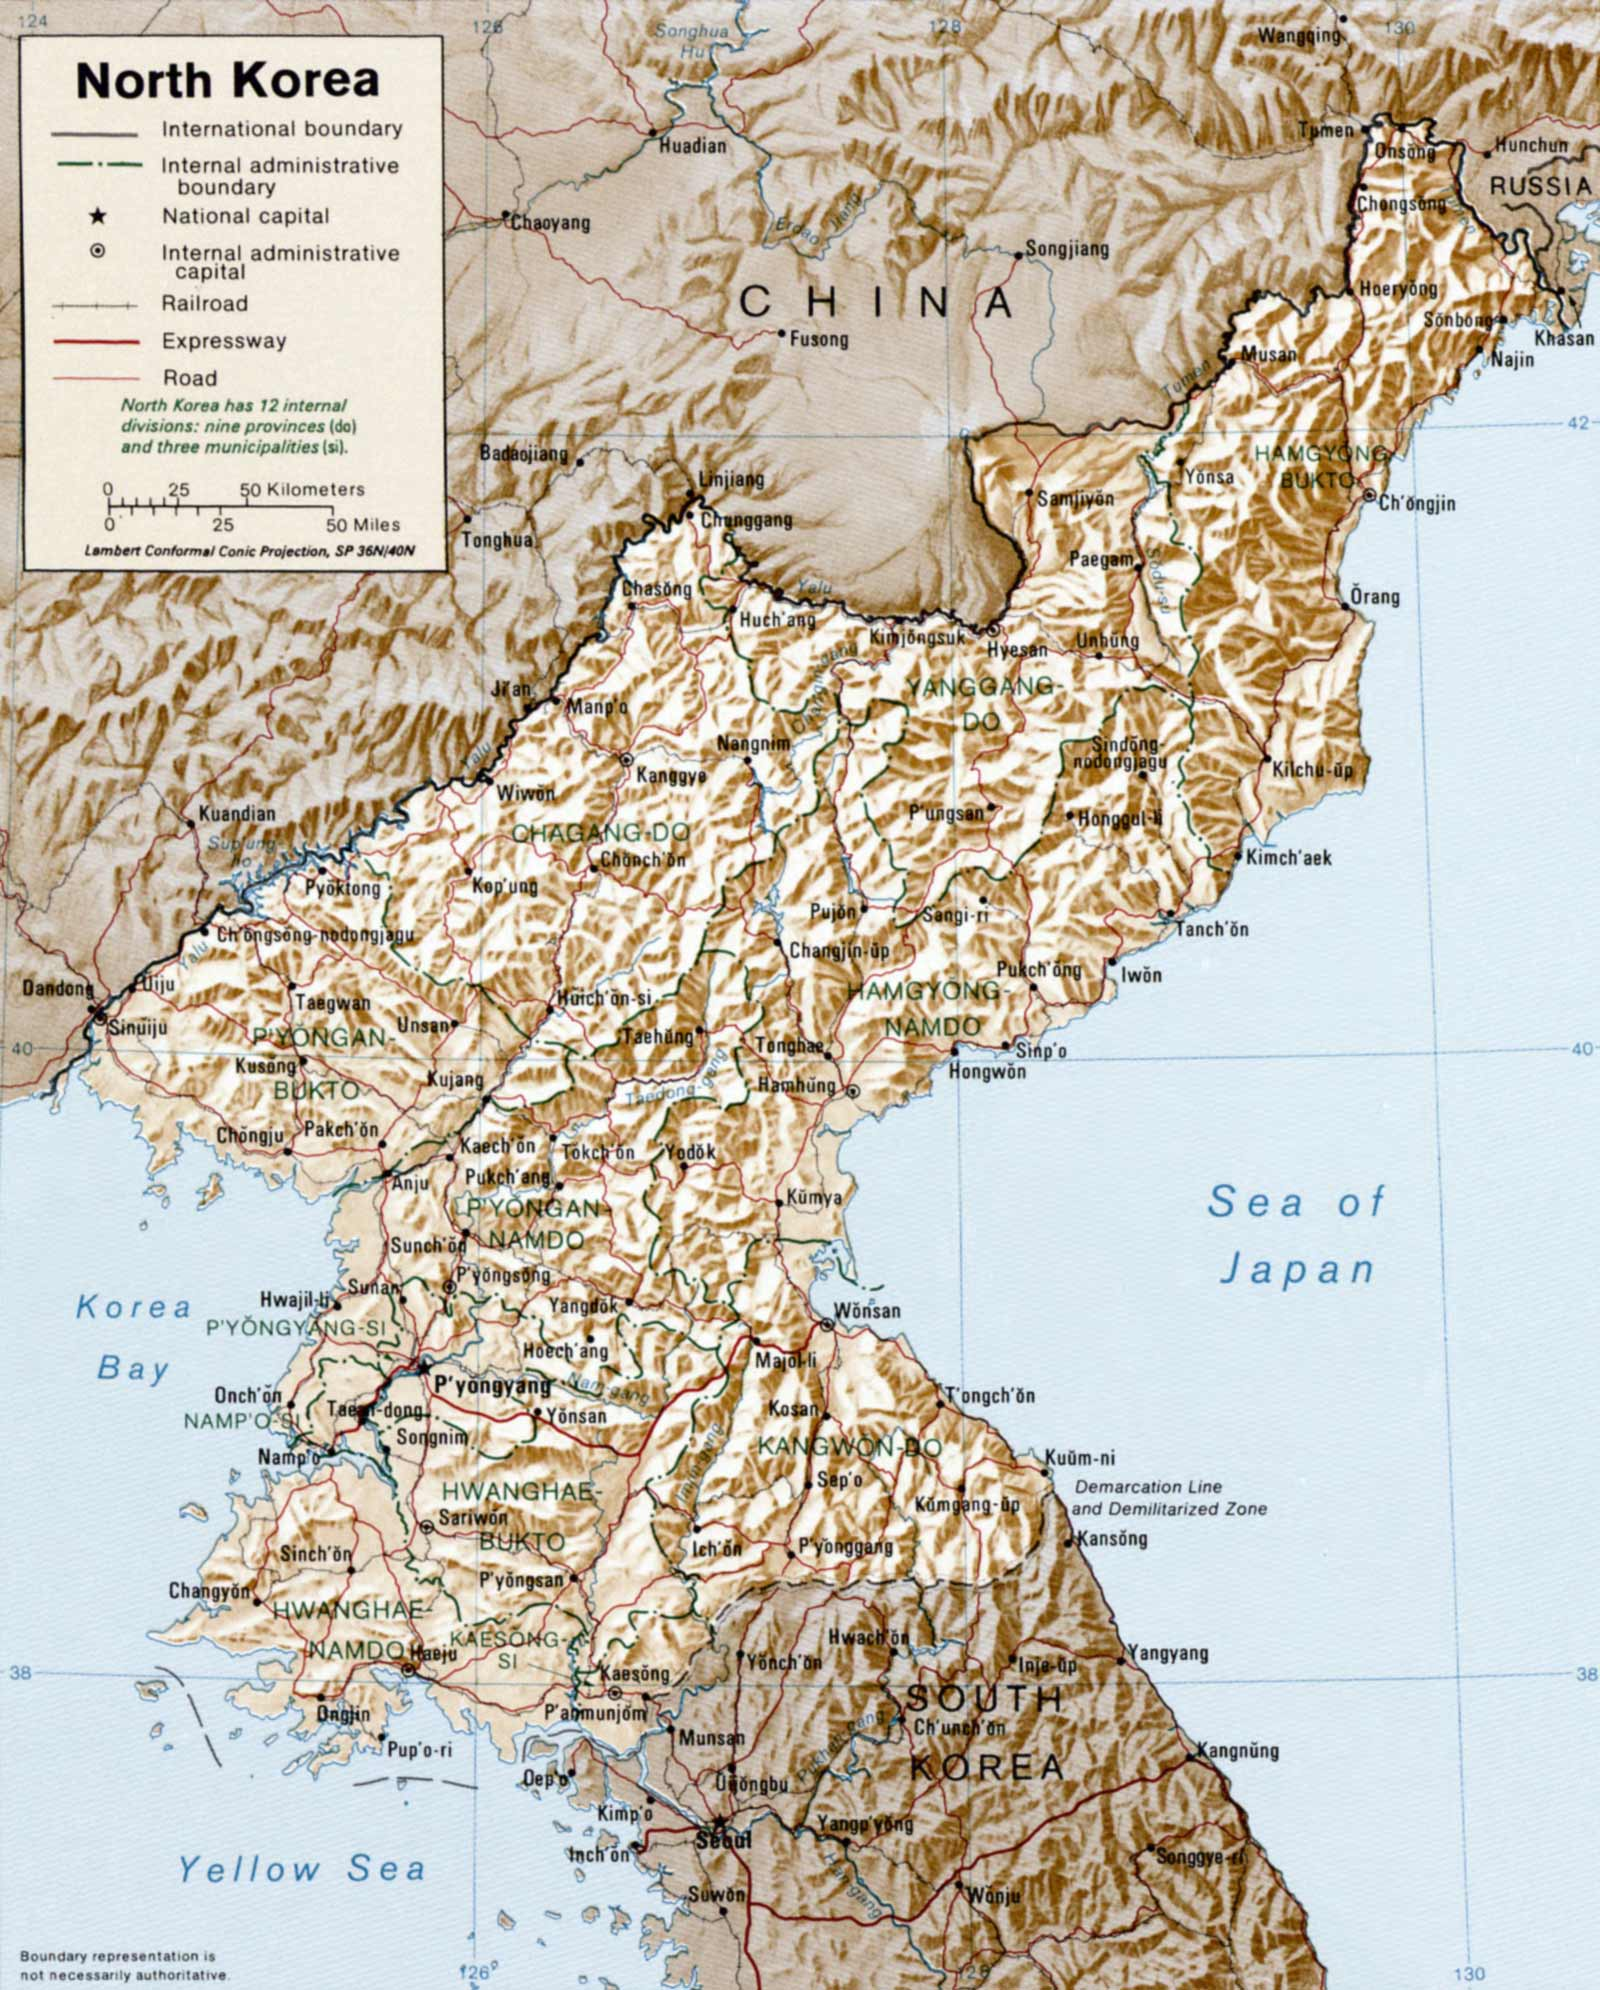 North Korea 1996 Cia Map large map